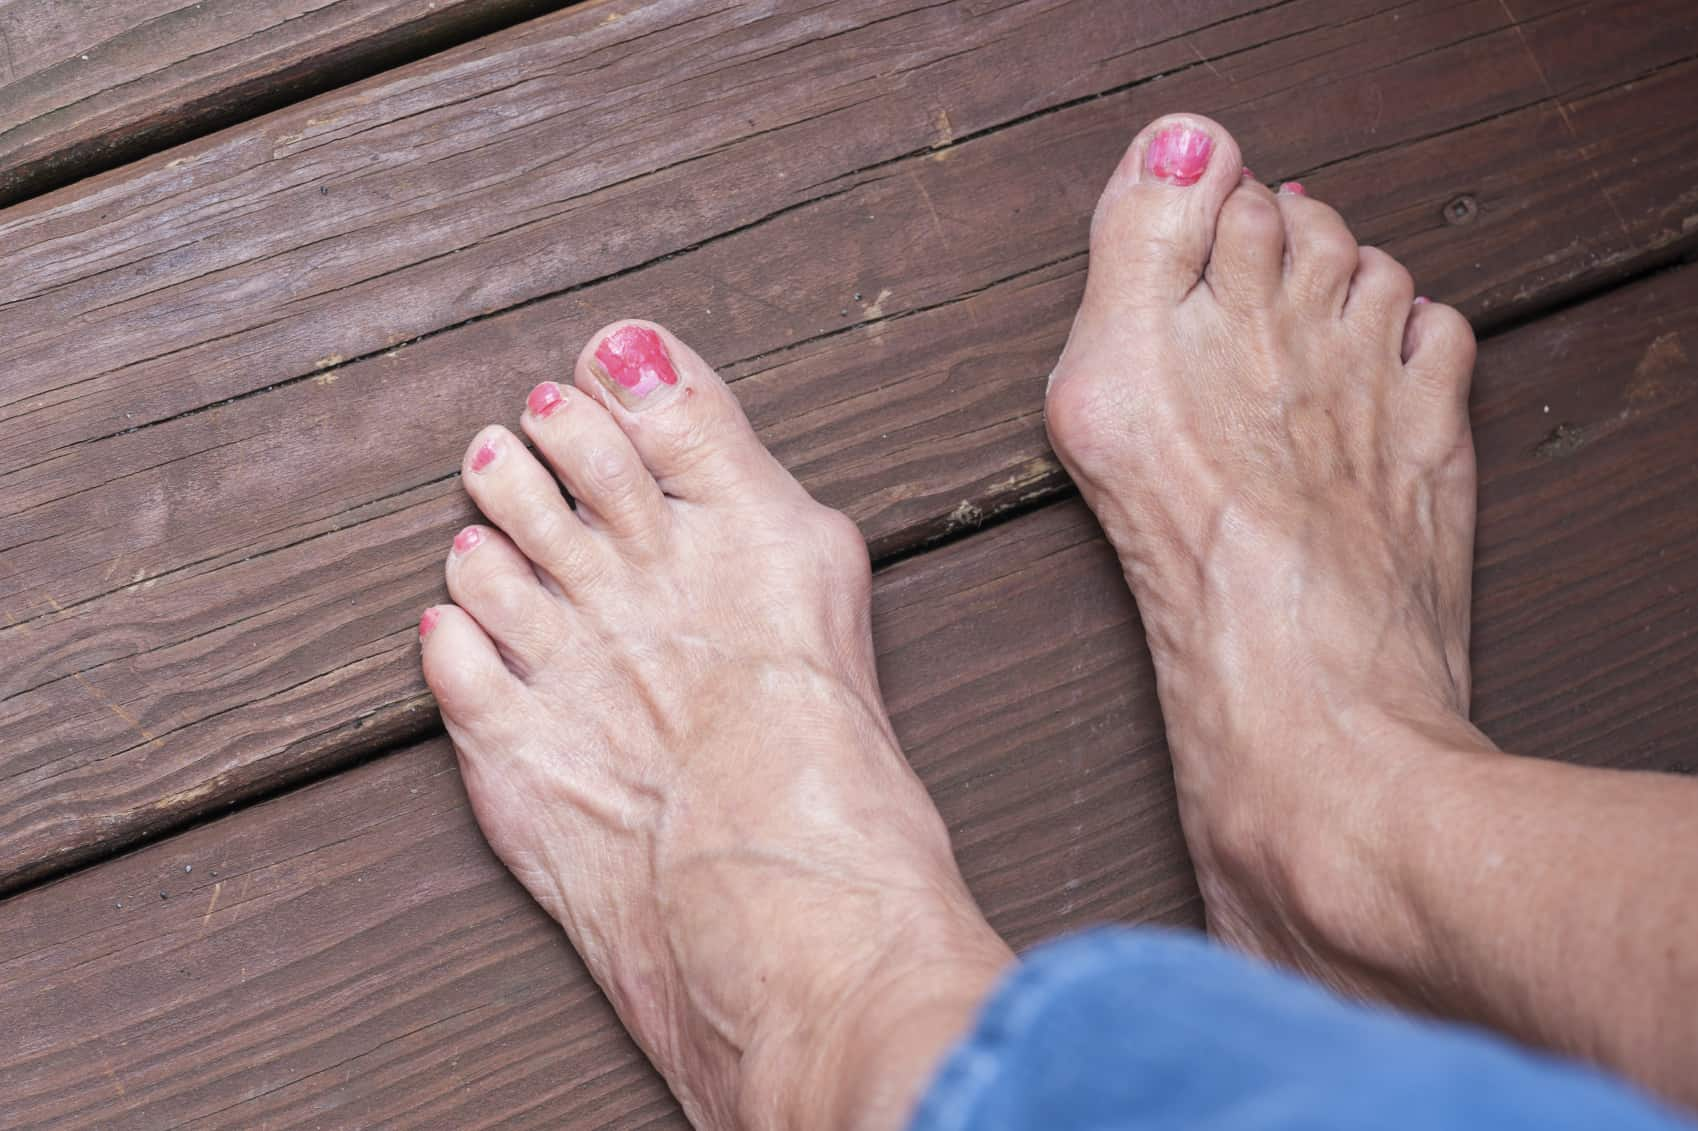 Pair of feet with severe bunions